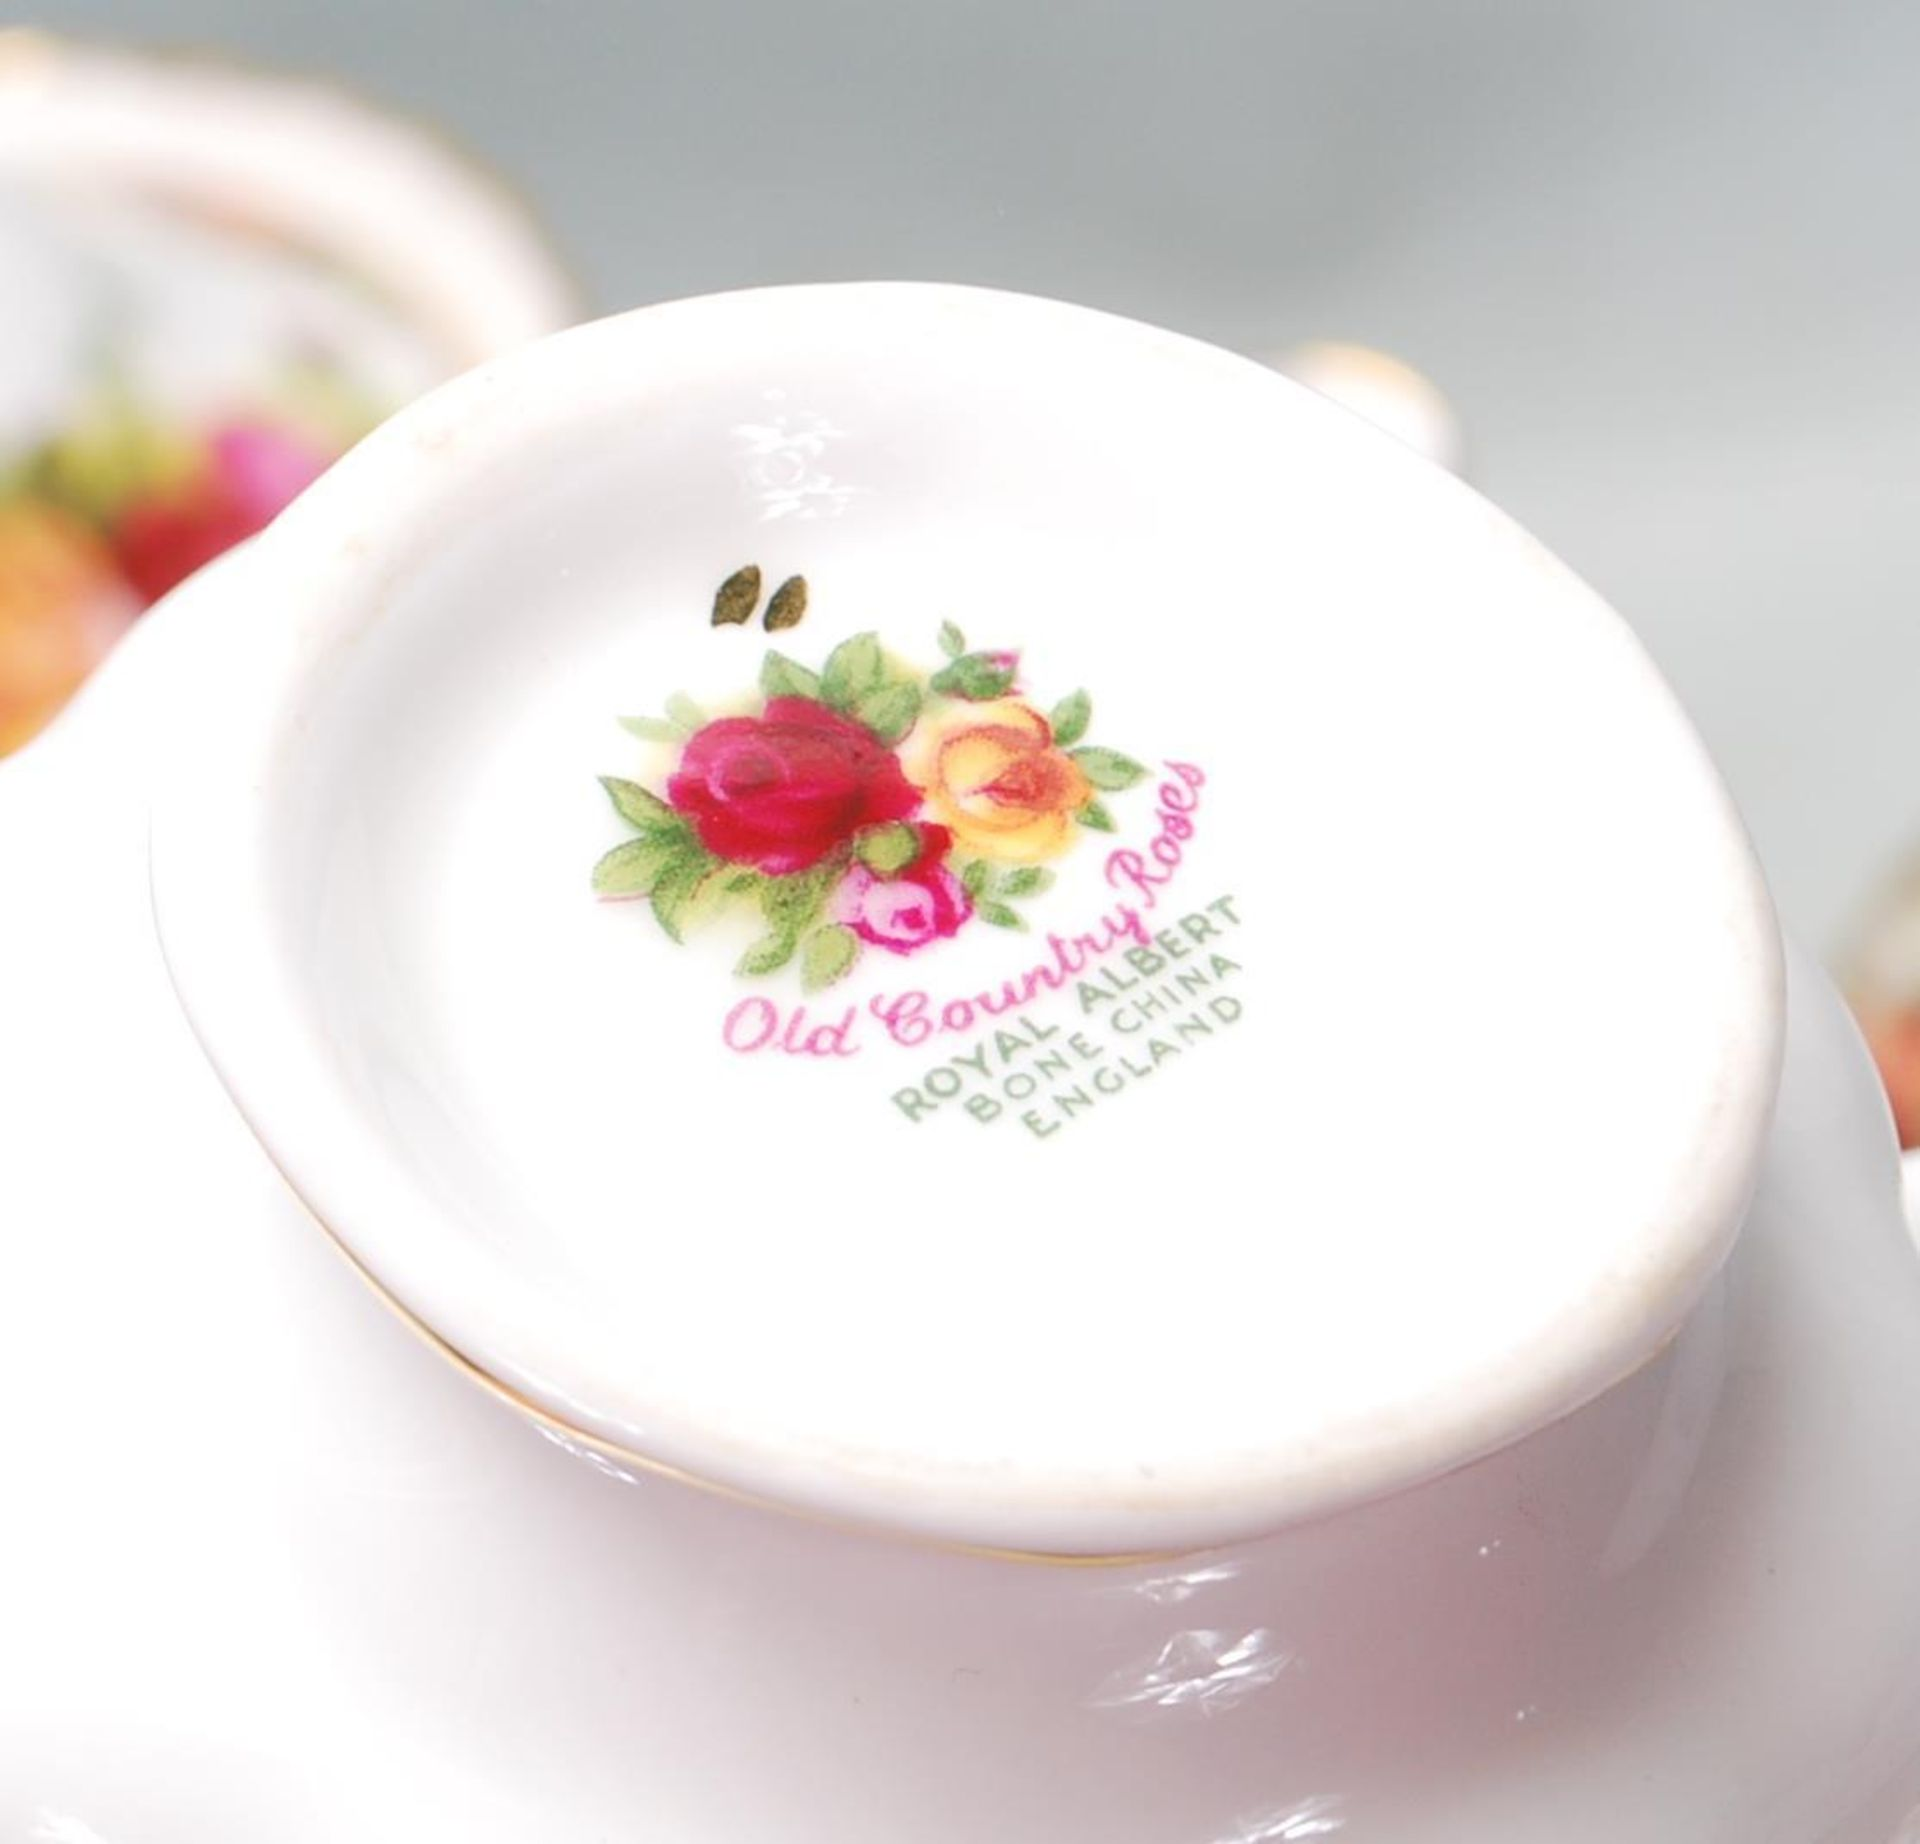 ROYAL ALBERT OLD COUNTRY ROSES TEA SET -TEA SERVICE - Image 8 of 8